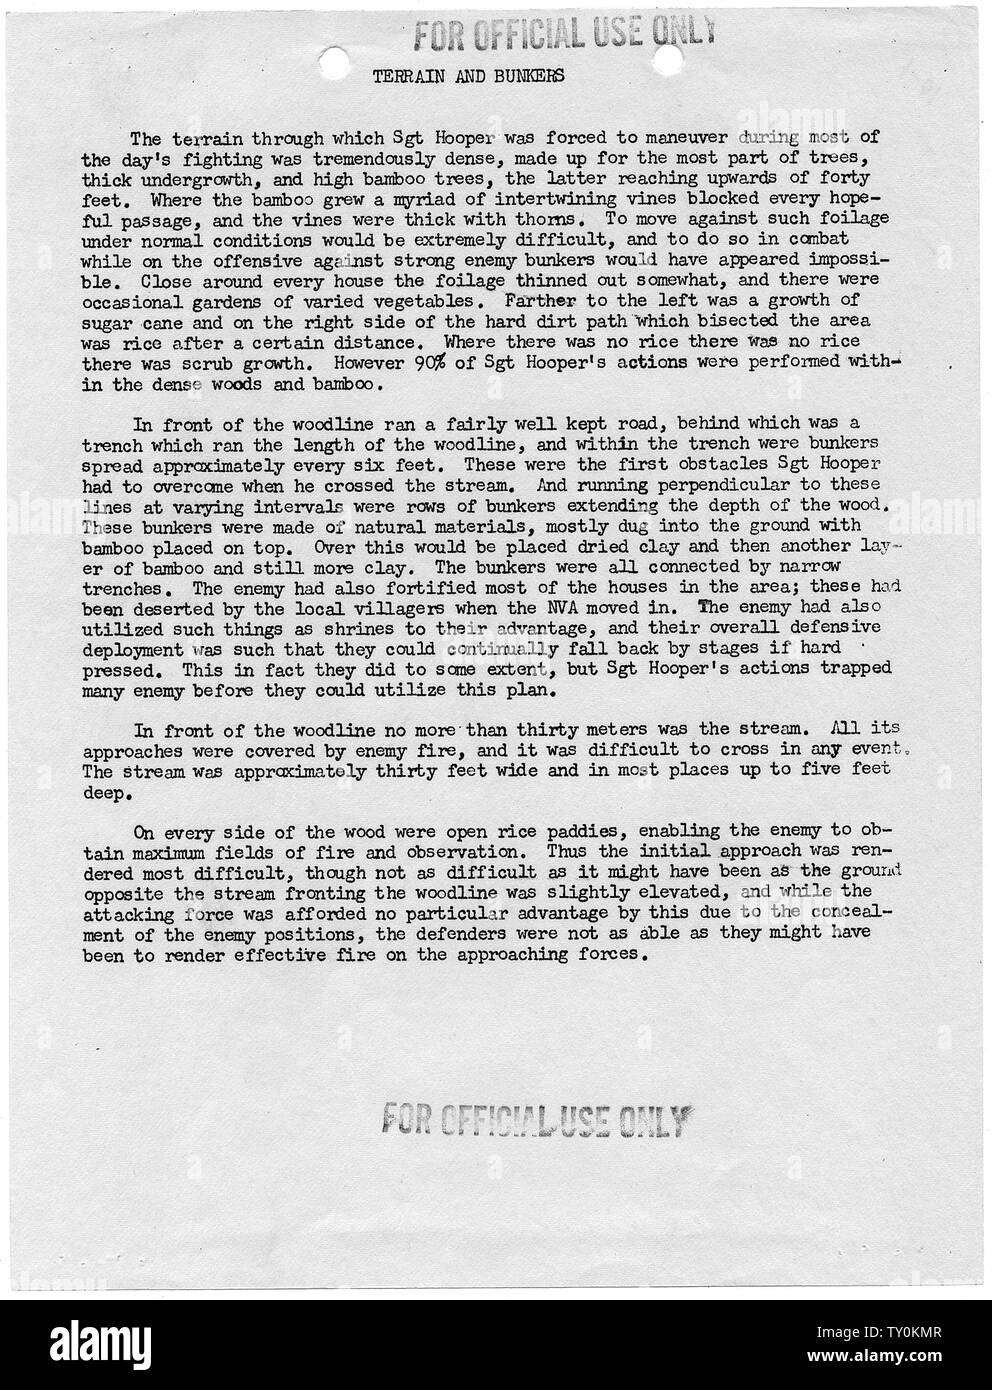 Description of Terrain Included in Case File for Congressional Medal of Honor to be Awarded to Joe R. Hooper, Staff Sergeant, Company D, Second Battalion (Airborne), 501st Infantry, 101st Airborne Division, for actions at the Battle of Hue, 21 February 1968; Scope and content:  This document describes the terrain through which Staff Sergeant Joe R. Hooper passed on 21 February 1968, at the battle of Hue, Republic of Vietnam. Ultimately, Hooper was awarded the Congressional Medal of Honor. In an extraordinary occurrence, Staff Sergeant Clifford C. Sims of the same company earned the Congression - Stock Image